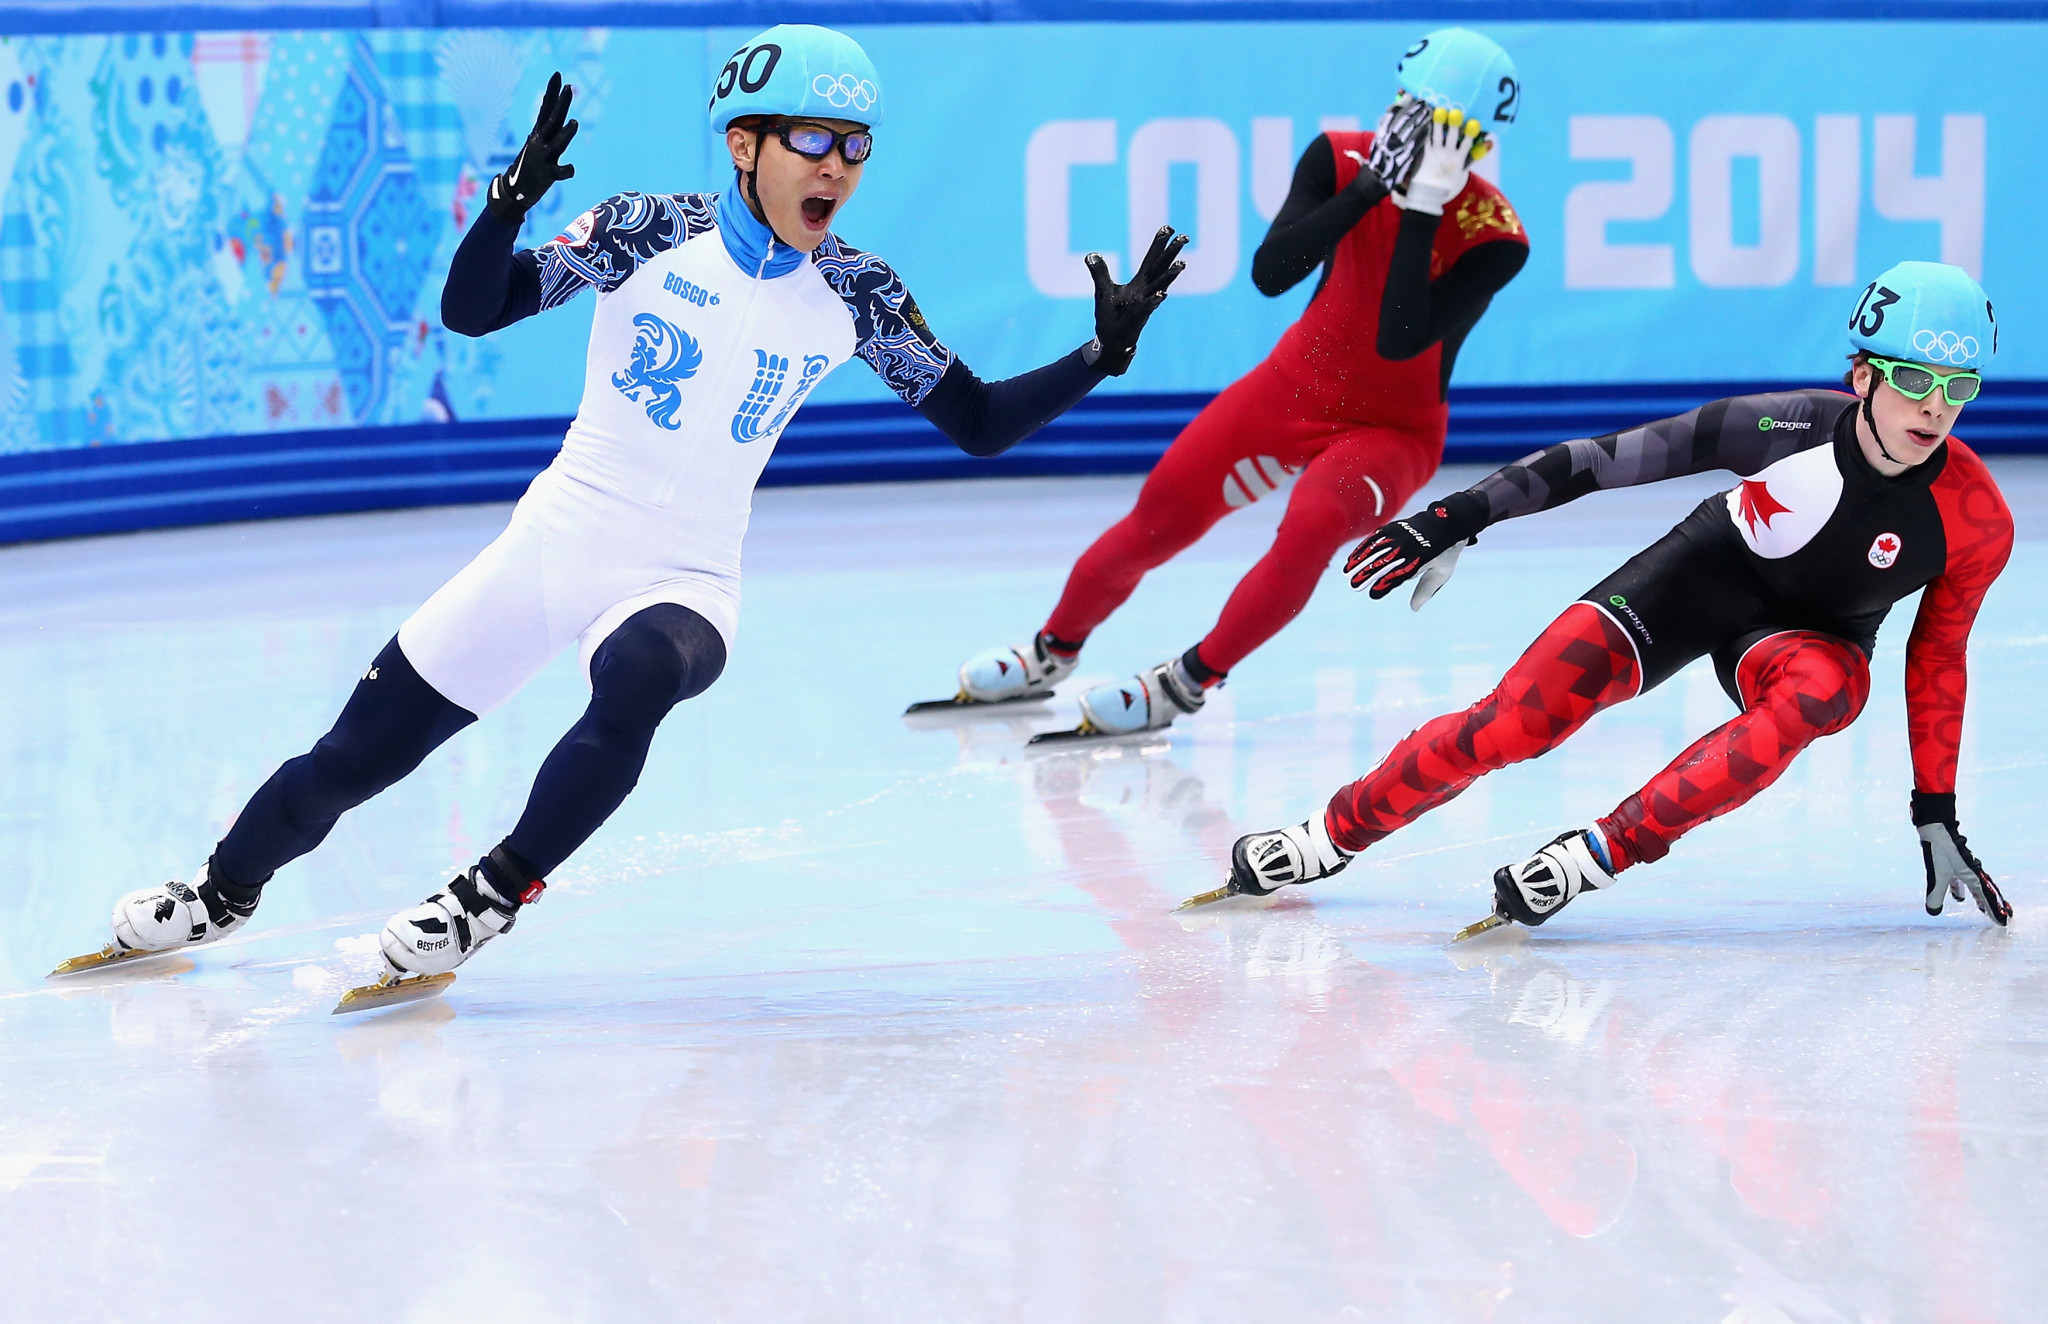 Six-time champion Viktor Ahn is the most decorated short track speed skater in Olympic history ©Getty Images